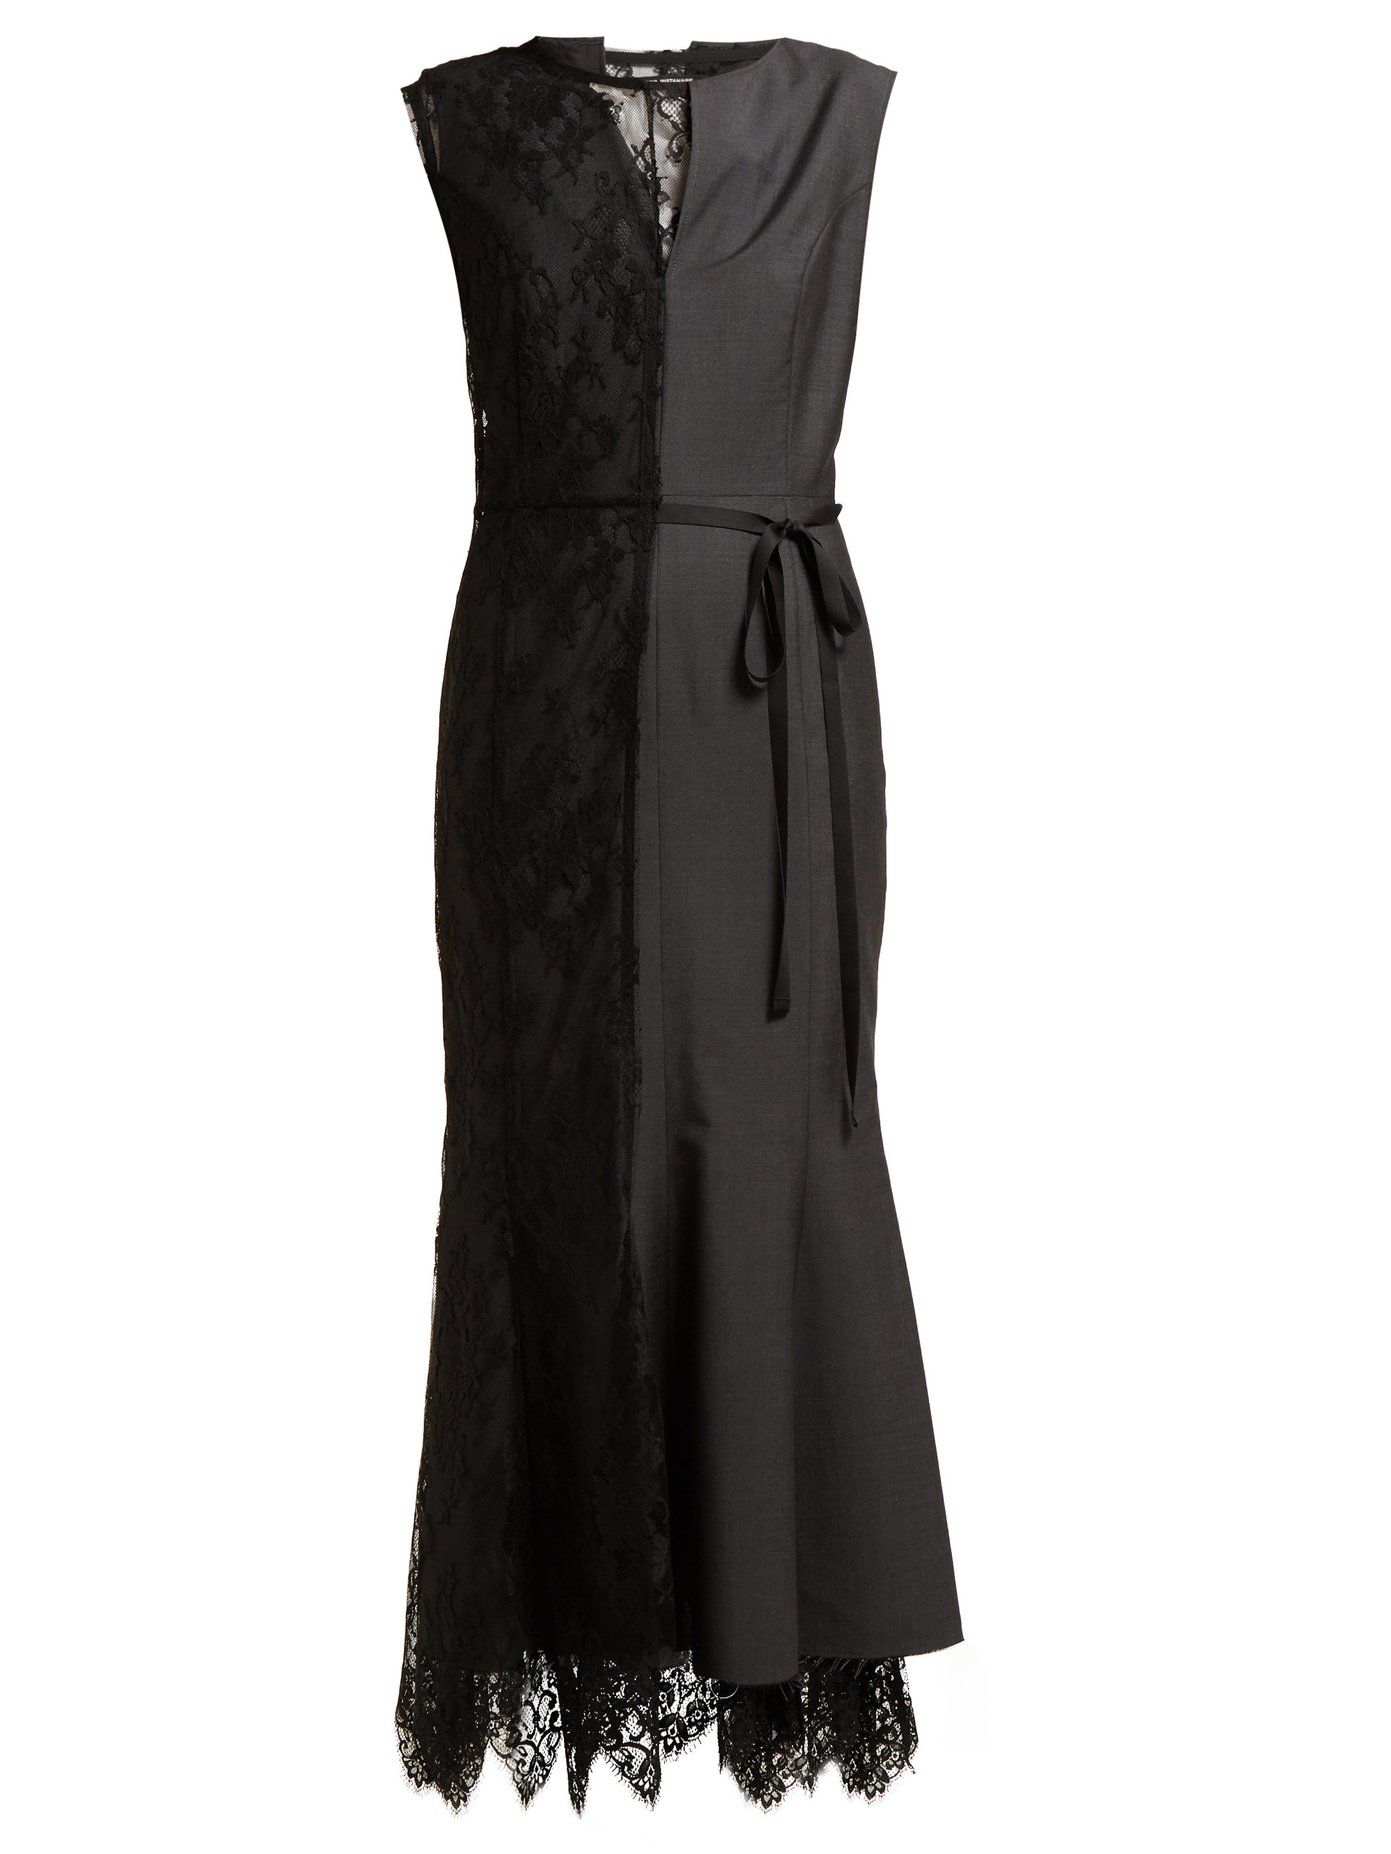 Lace Slip Overlay Wool Blend Dress Junya Watanabe